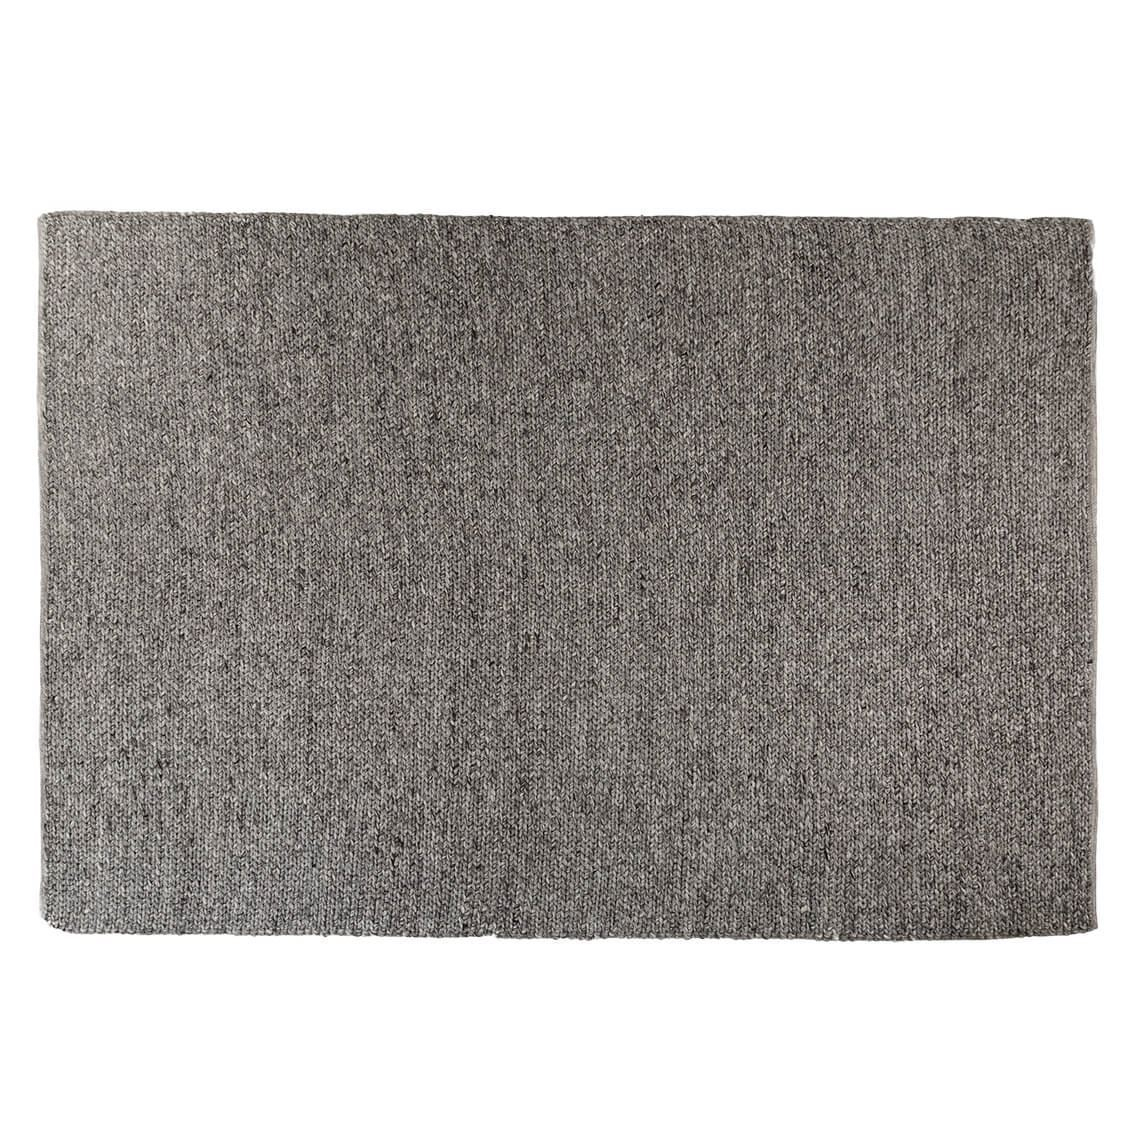 Romain Floor Rug 200X300Cm Grey With Romain Accent Mirrors (Photo 25 of 30)